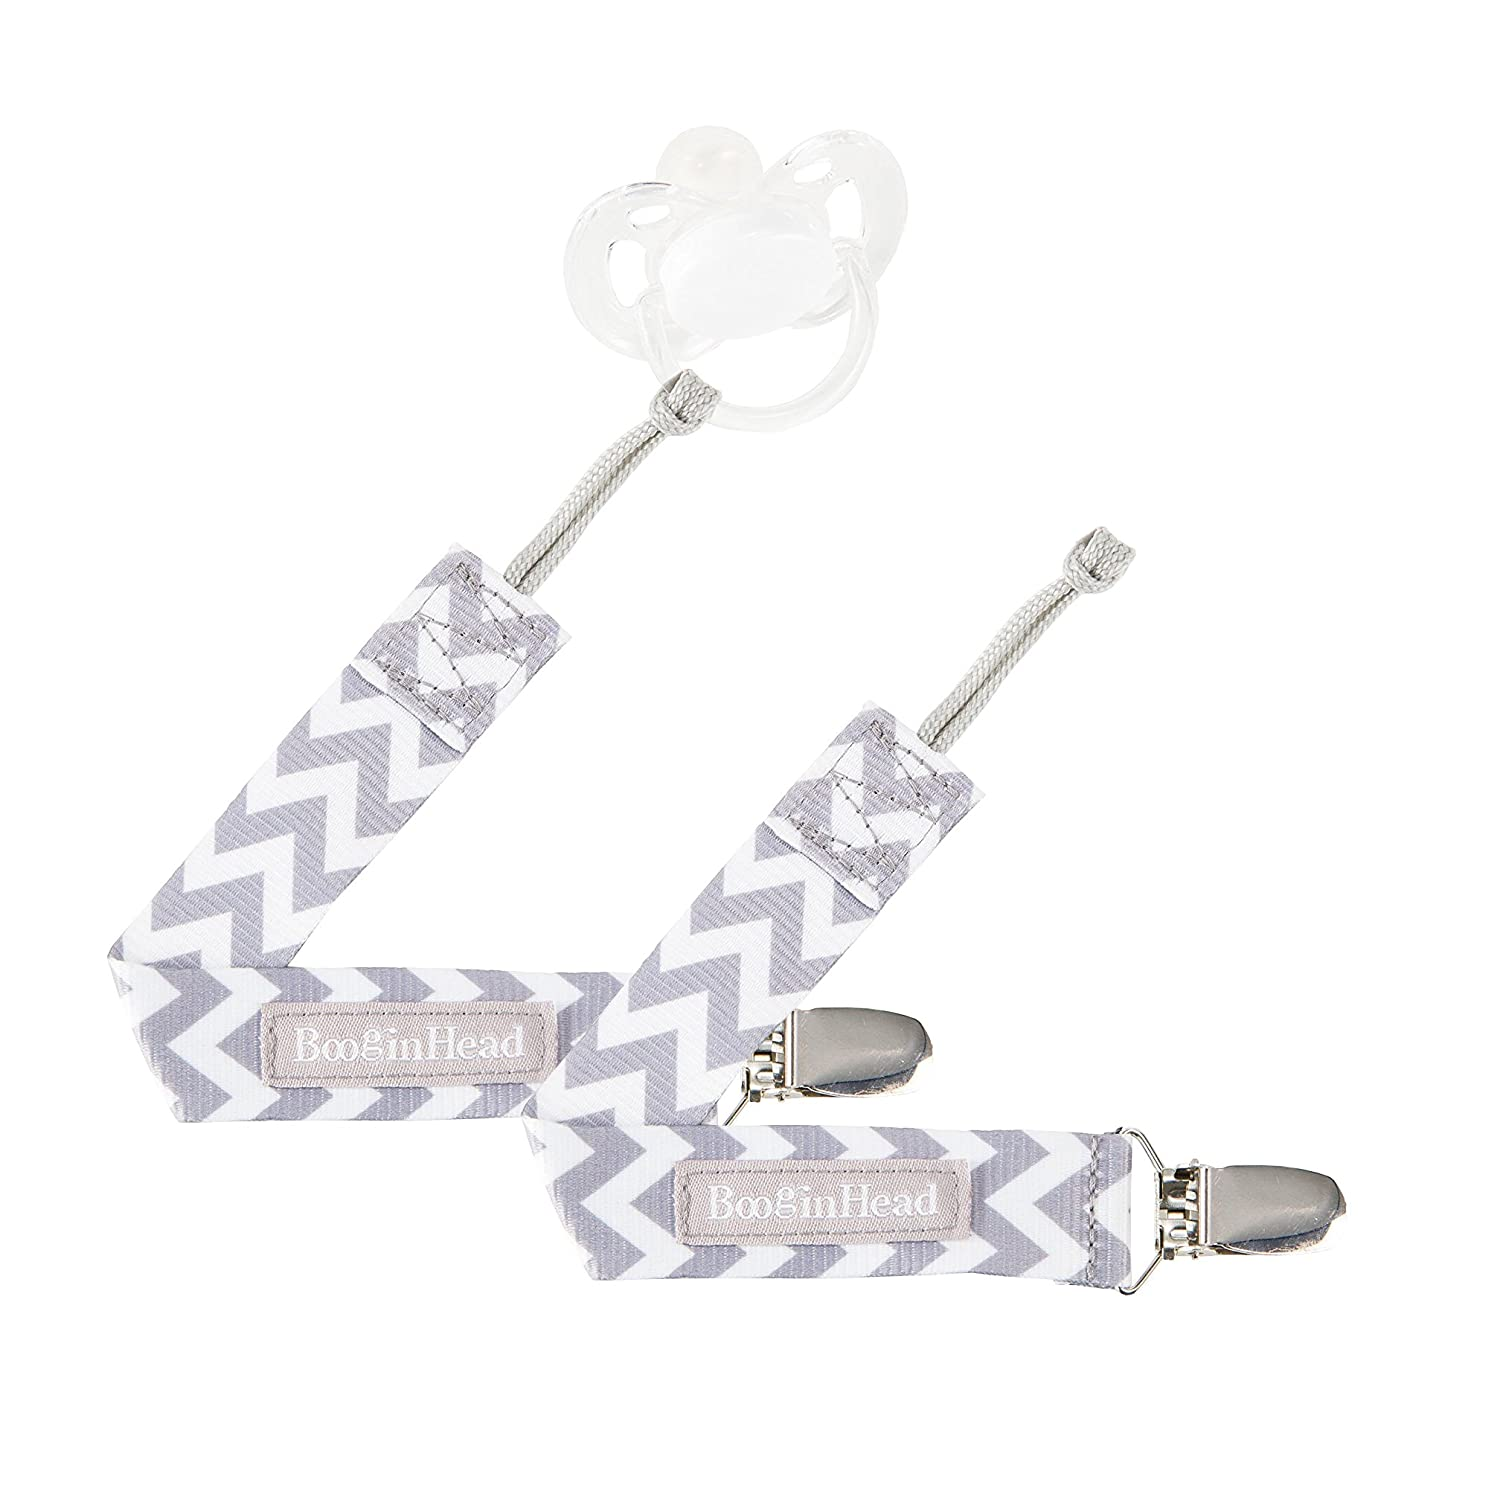 BooginHead Baby Newborn PaciGrip Pacifier Clip, Holder, Toy, Teether, Soothie, Universal Loop Girl, Boy, Gray Chevron, 2 Pack